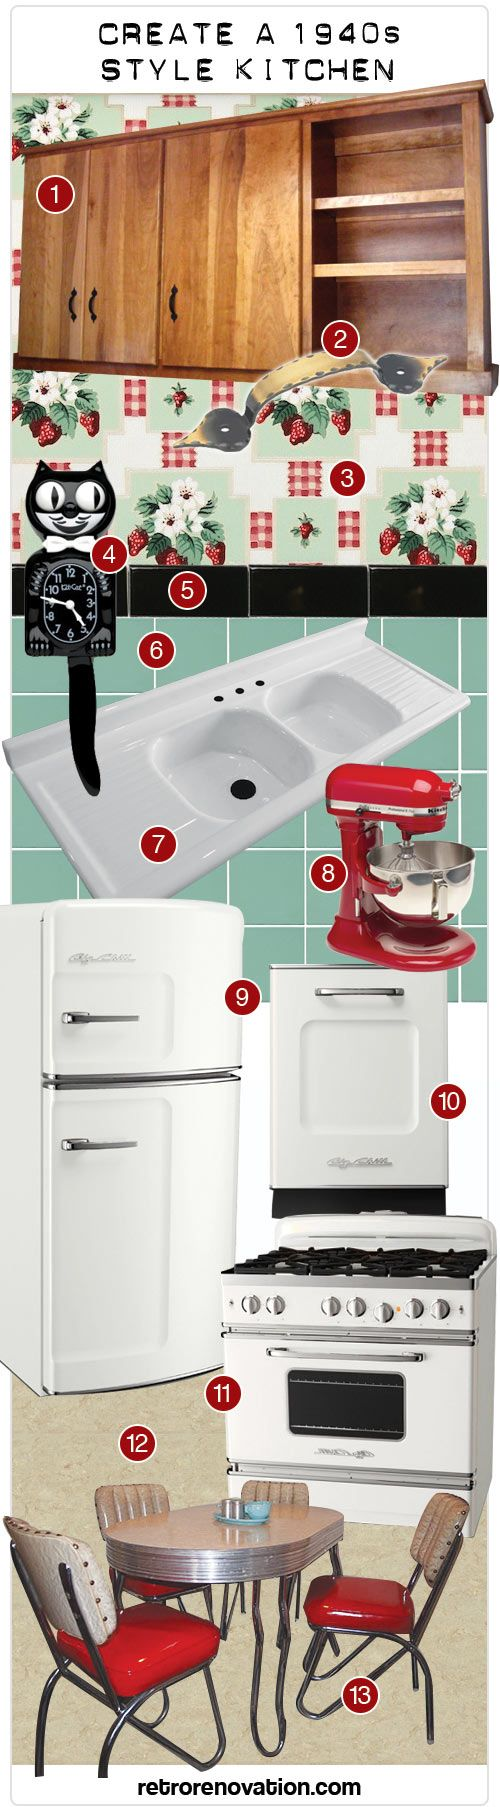 Create A 1940s Or Early 1950s Design Kitchen